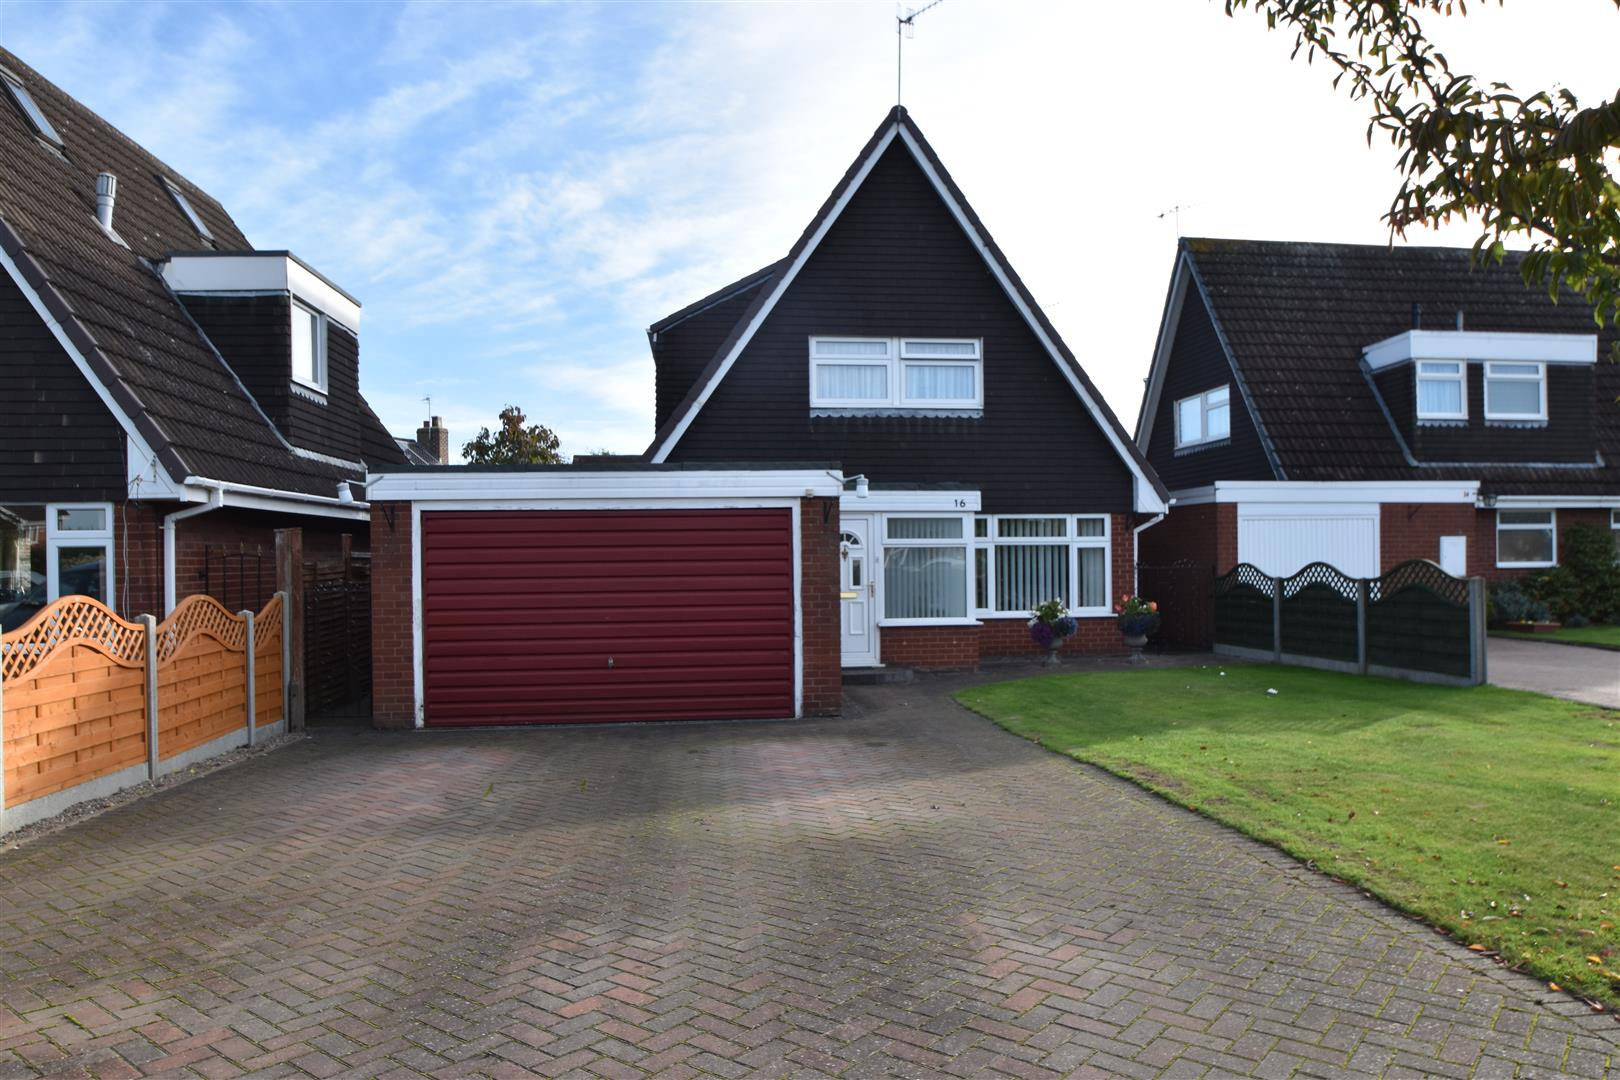 3 Bedrooms Detached House for sale in Post Office Lane, Fernhill Heath